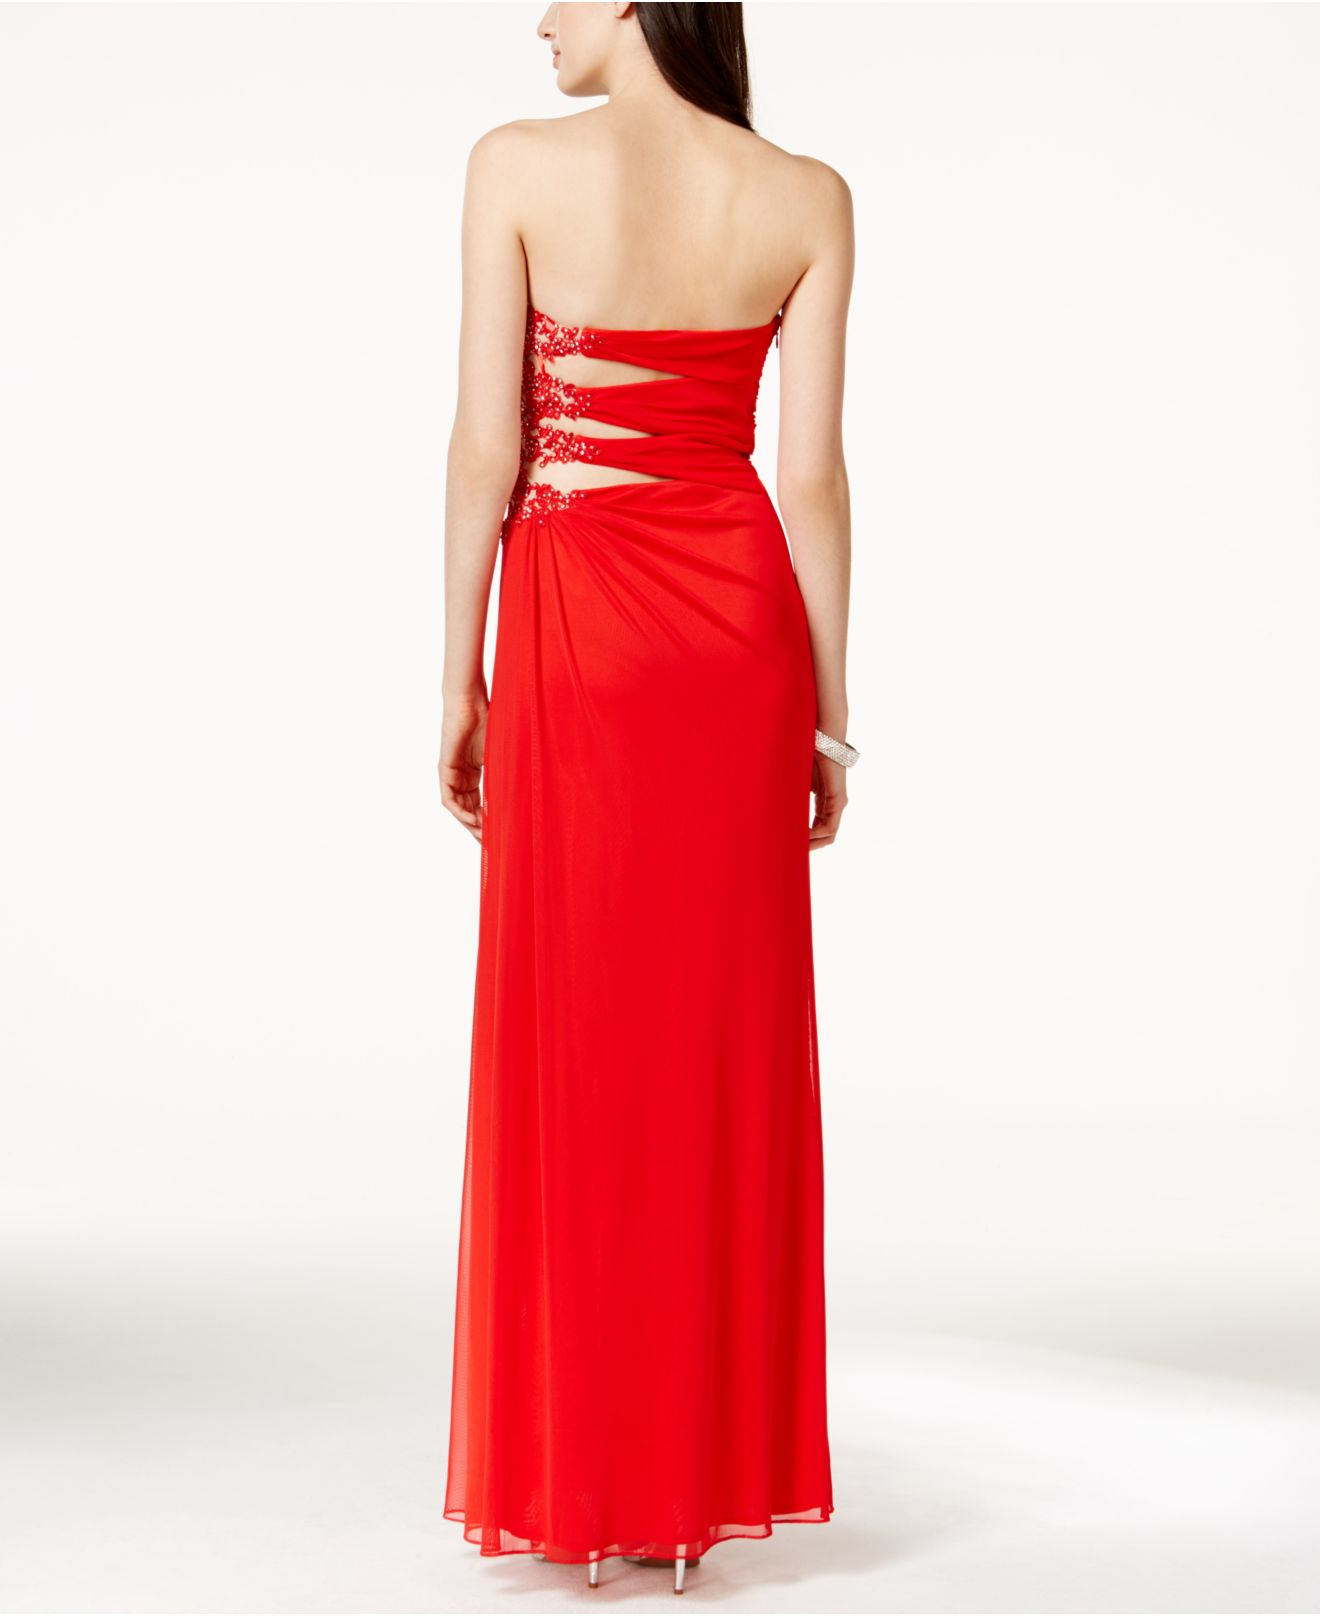 Lyst - Xscape Illusion-side Strapless Evening Gown in Red